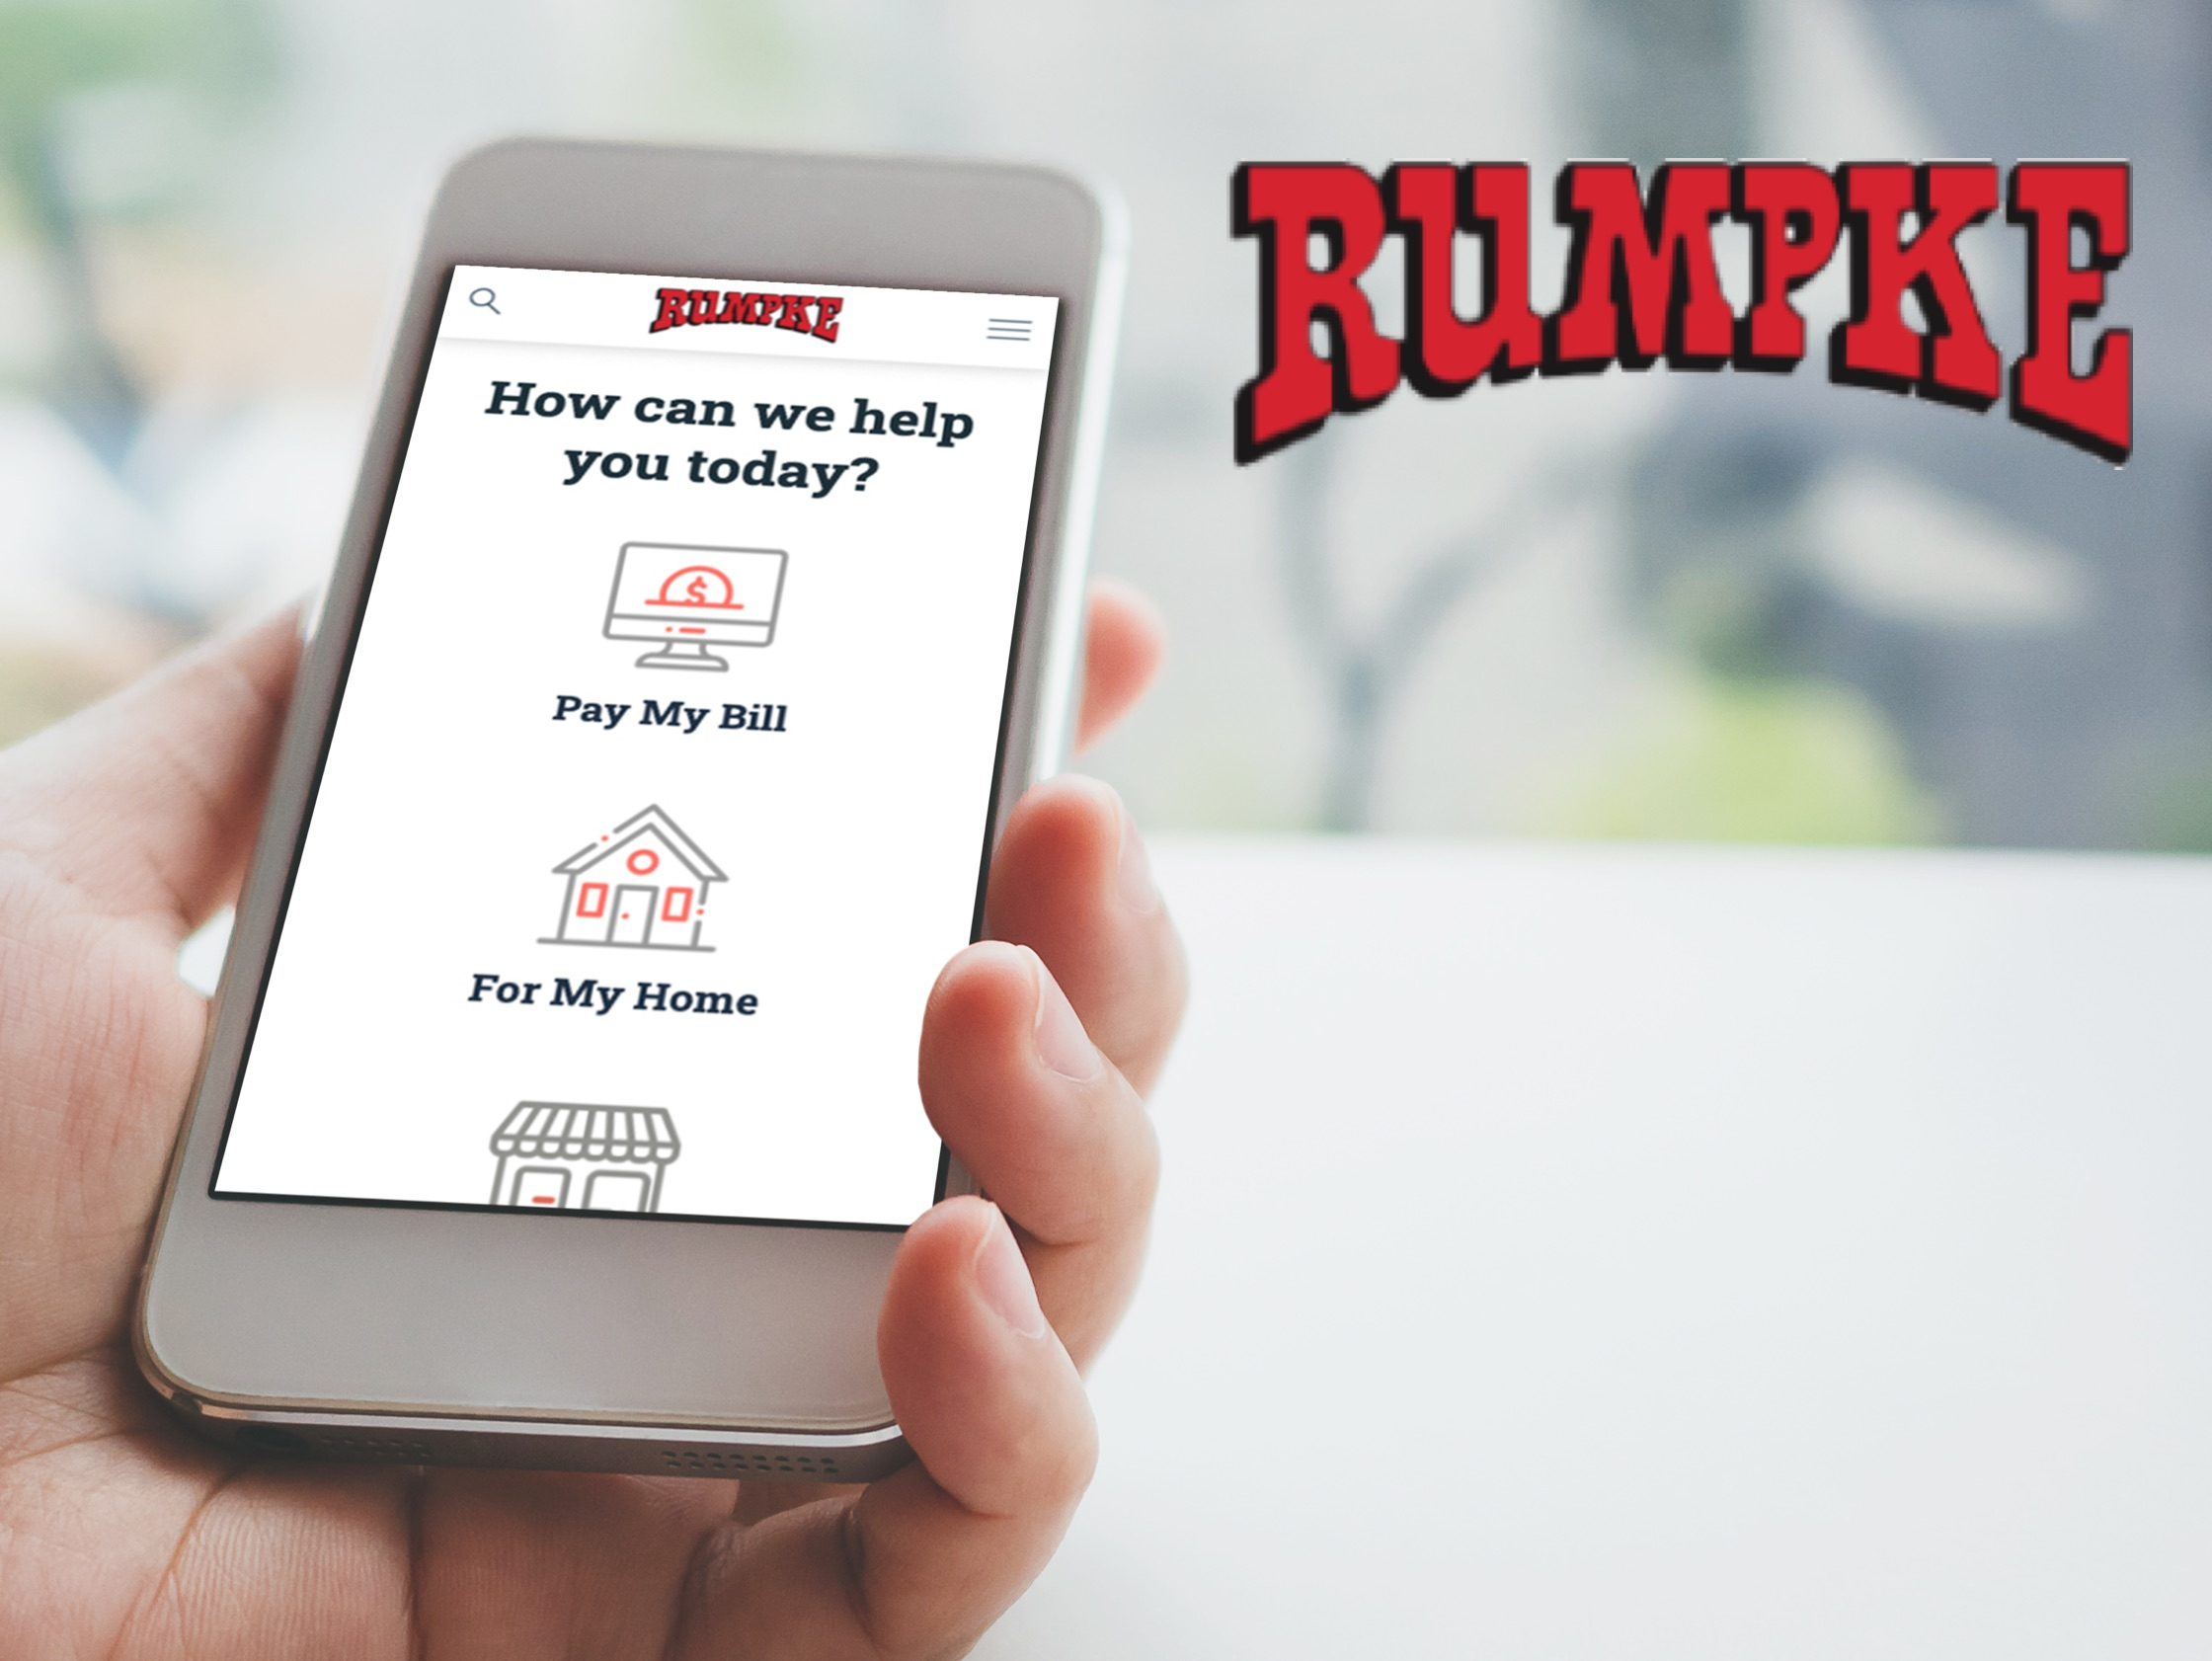 Image of person holding iPhone with Rumpke website on the screen.